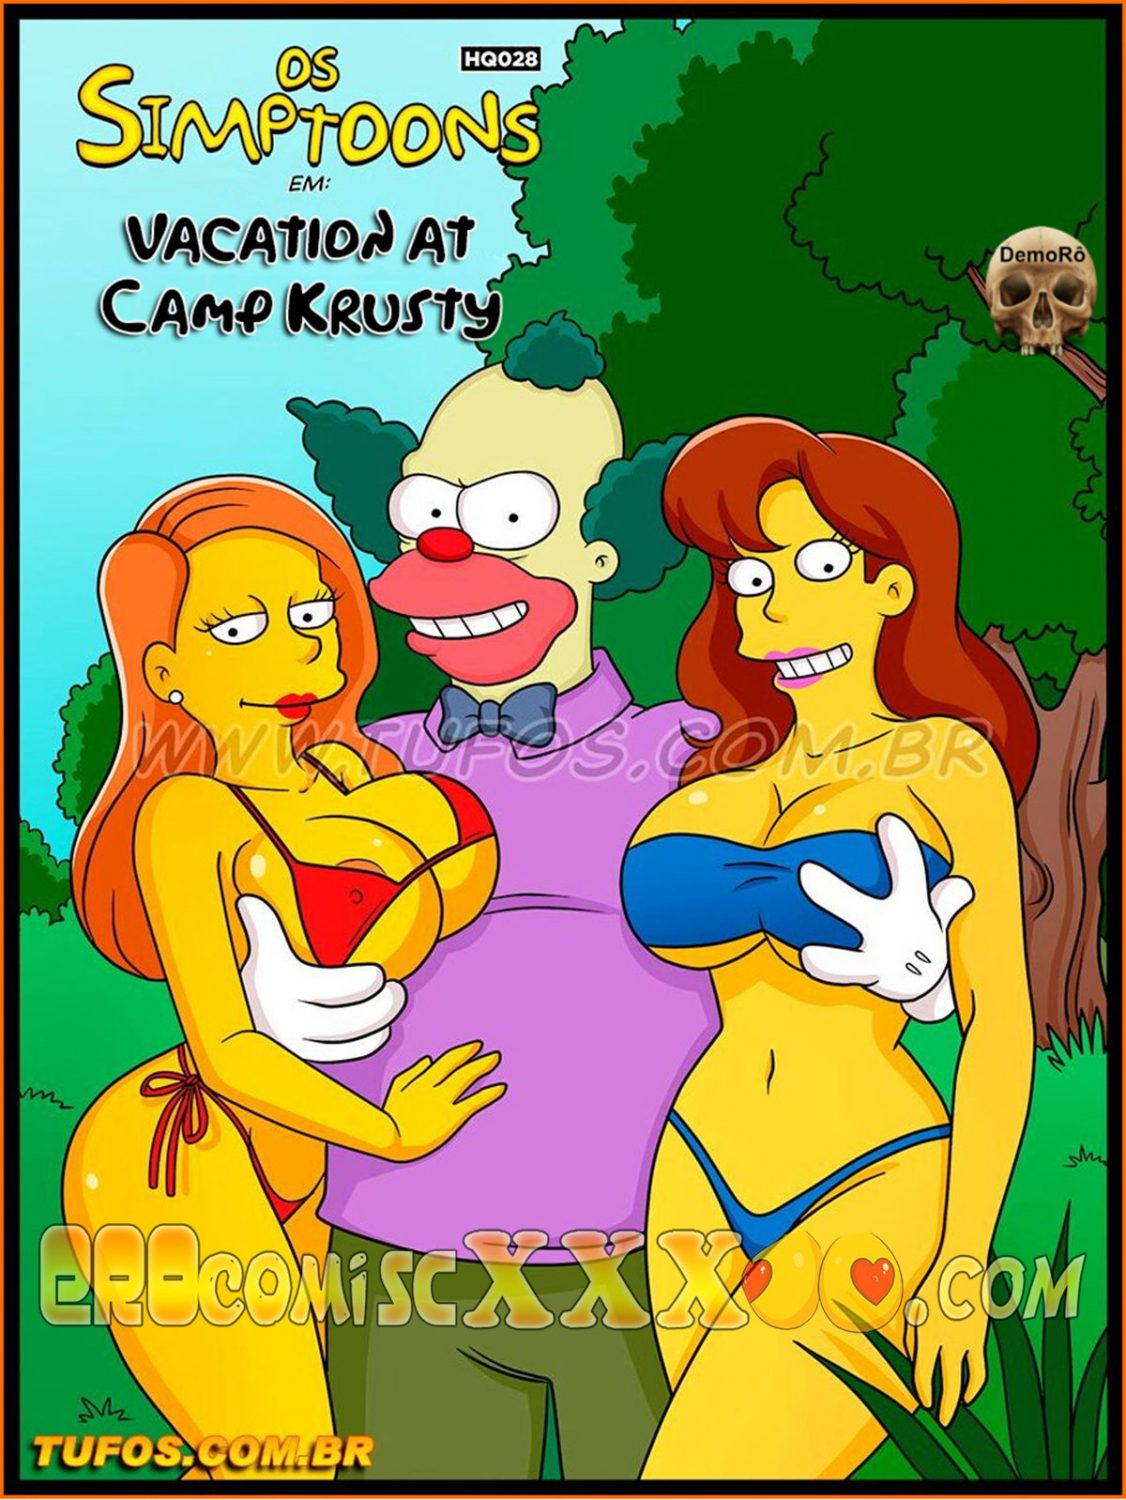 001 20 1126x1500 - Os Simptoons 28. Vacation at Camp Krusty.